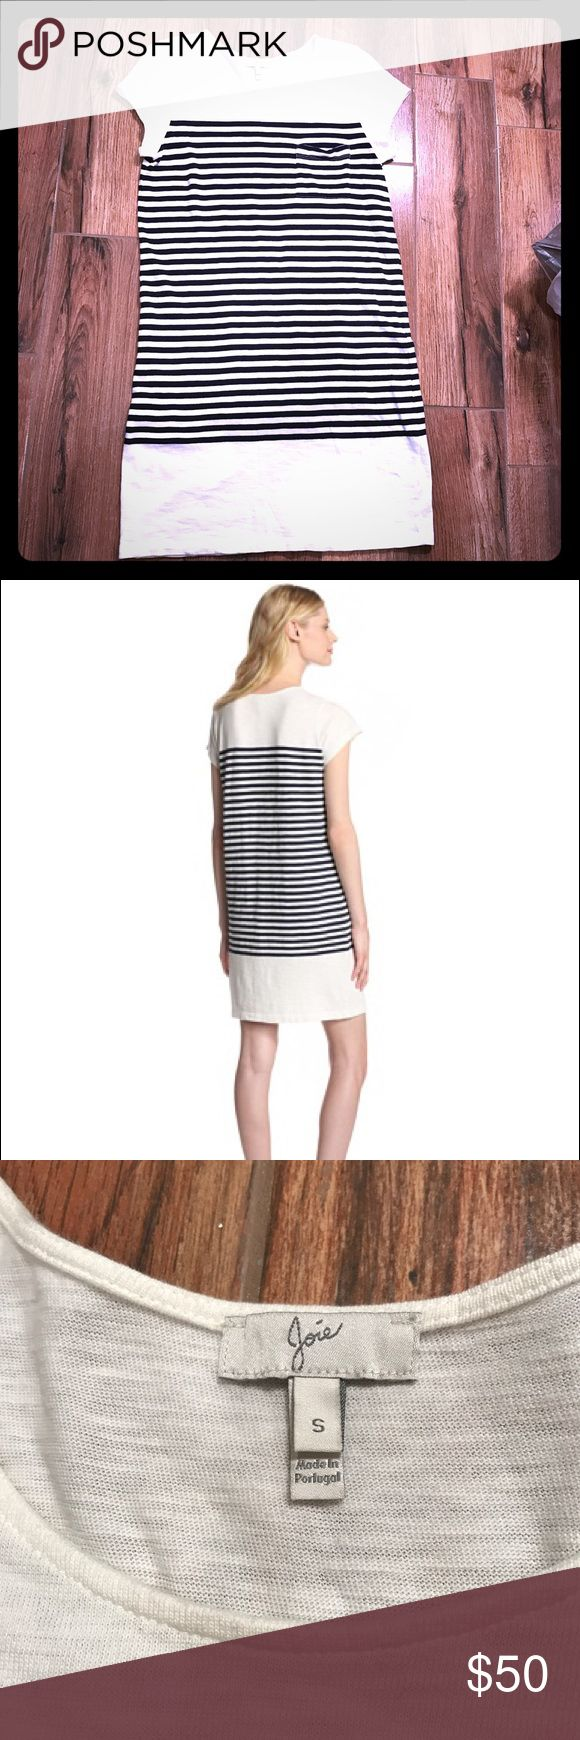 Joie Courtina Cotton Slub Striped Short Dress SZ S Joie Women's Courtina Cotton Slub Striped Short-Sleeve Dress- Navy/White   Skinny two-tone stripes add a sporty touch to a casual dress cut from cotton jersey that's as soft and comfy as your favorite tee.  Crewneck. Cap sleeves. Chest patch pocket.  ❤️️❤️️❤️️Mint like new condition❤️️❤️️❤️️ Joie Dresses Mini